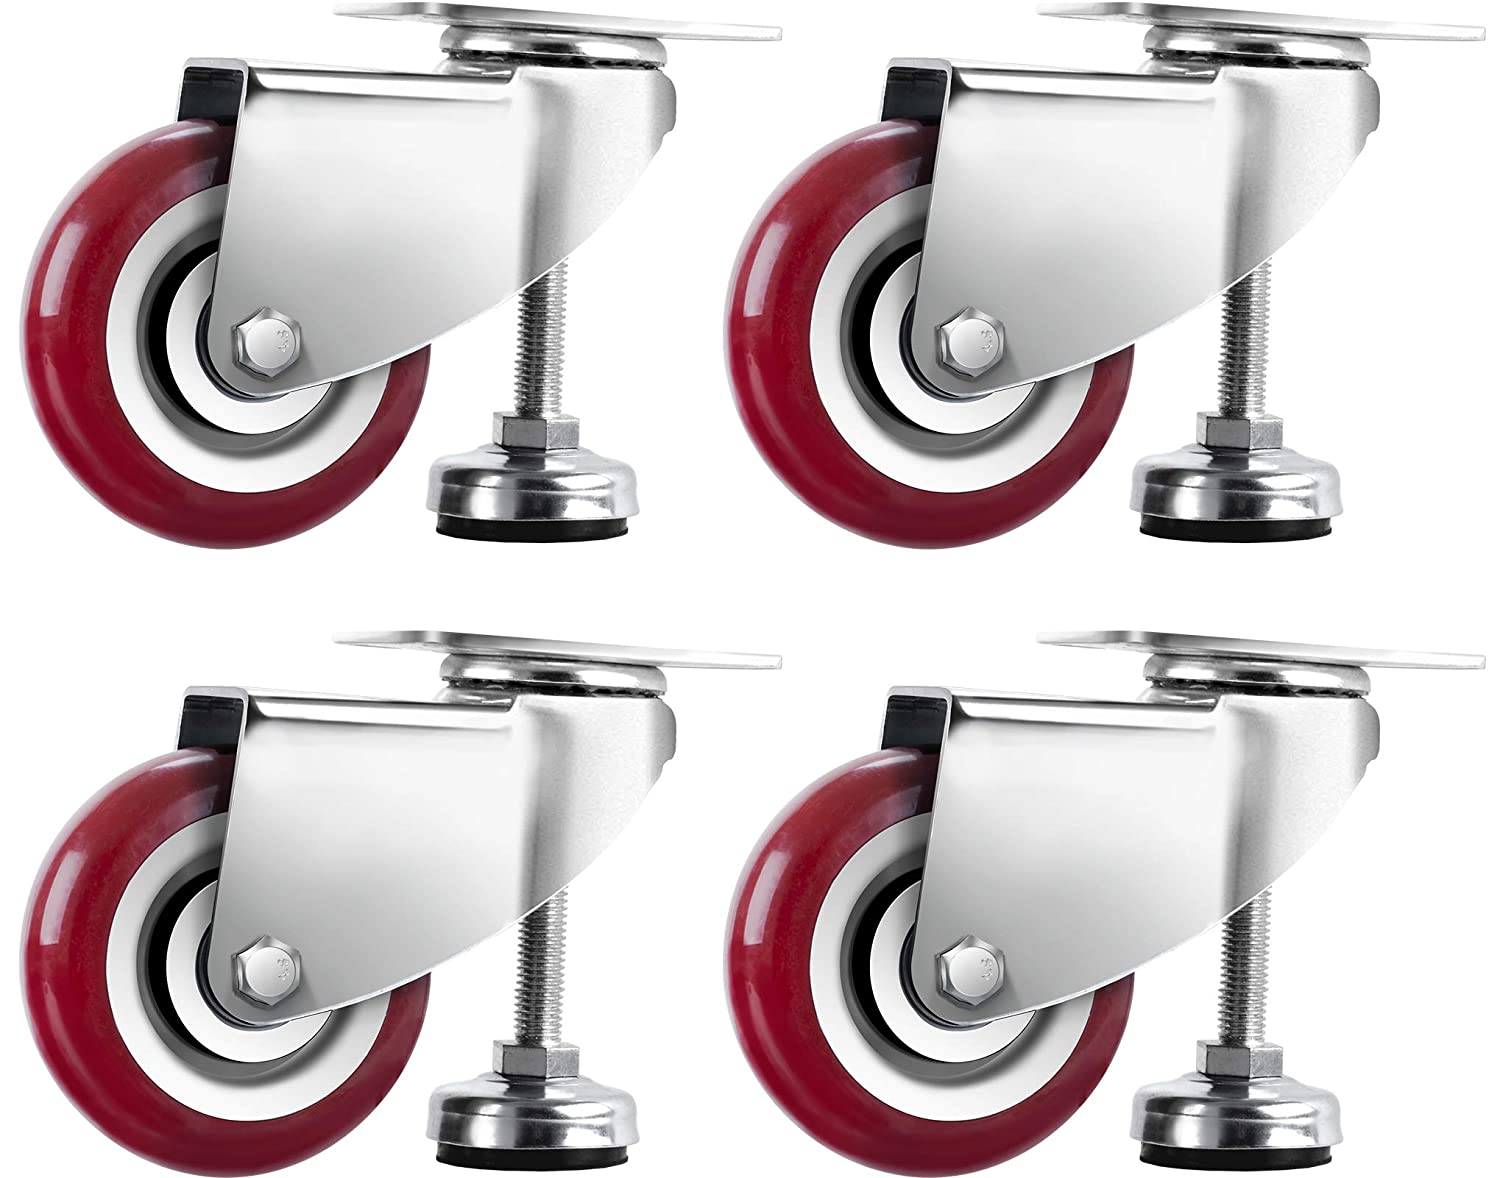 SPACECARE 4 Inches Swivel Caster Wheels, Heavy Duty Casters Set of 4 with Leg Levelers, 1360Lbs with 360 Degree No Noise Furniture Wheels